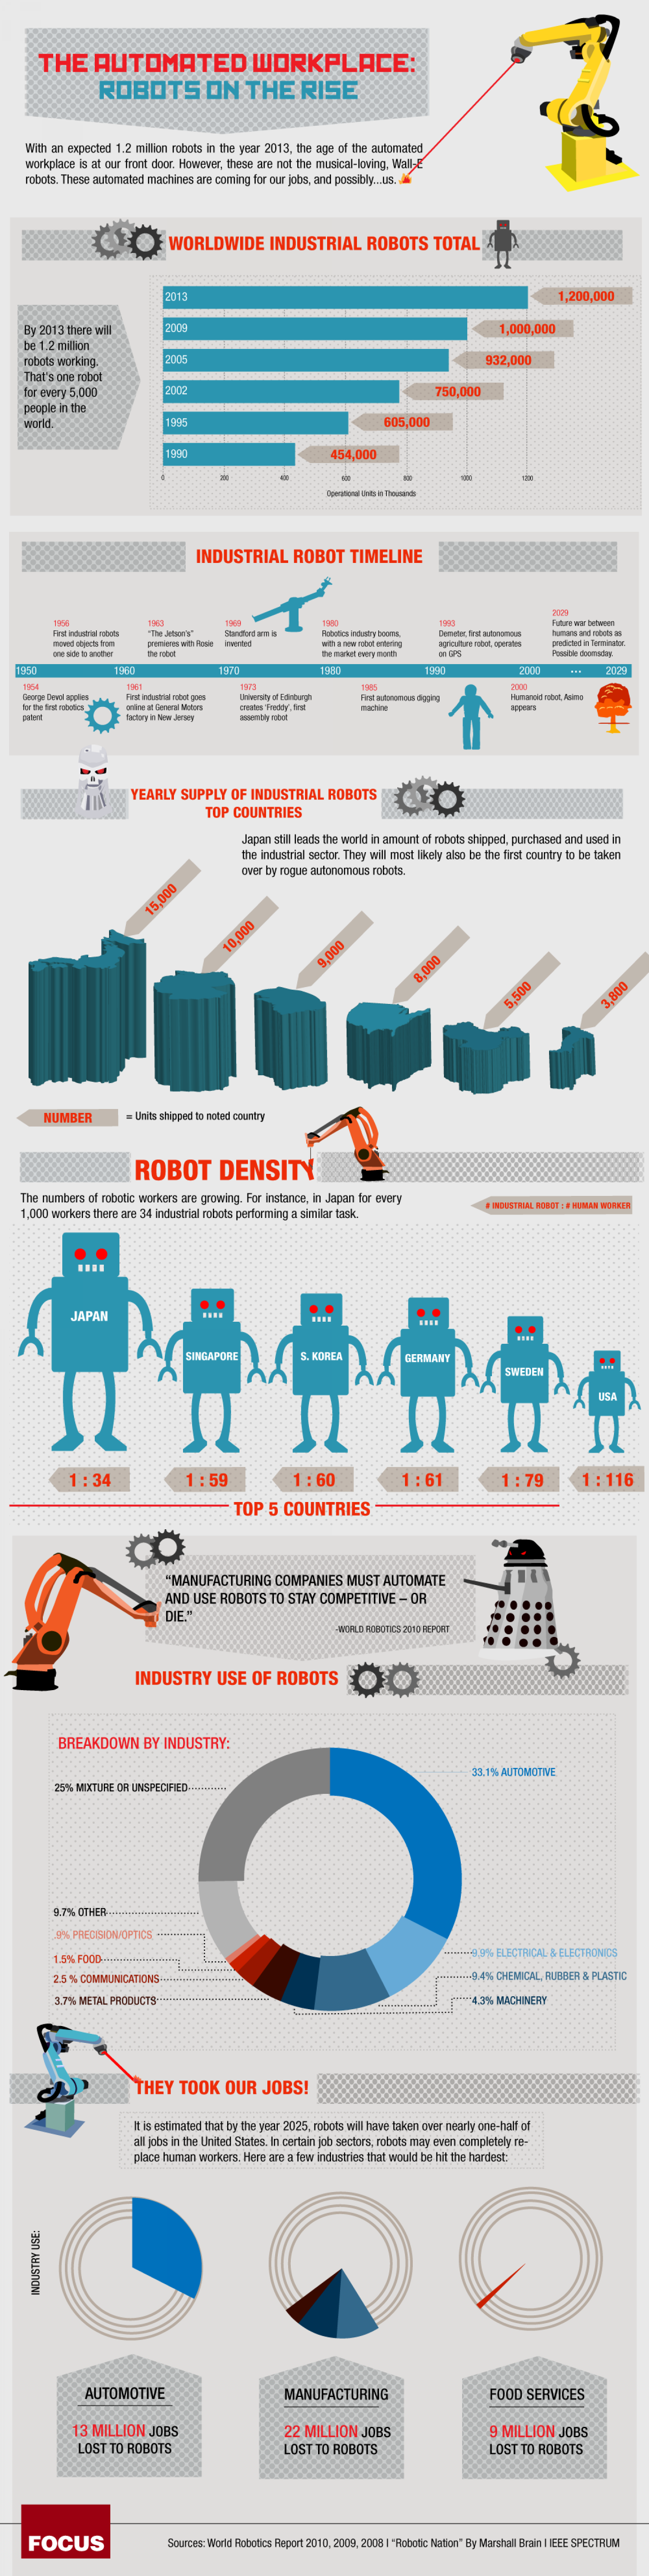 The Automated Workplace: Robots on the Rise Infographic